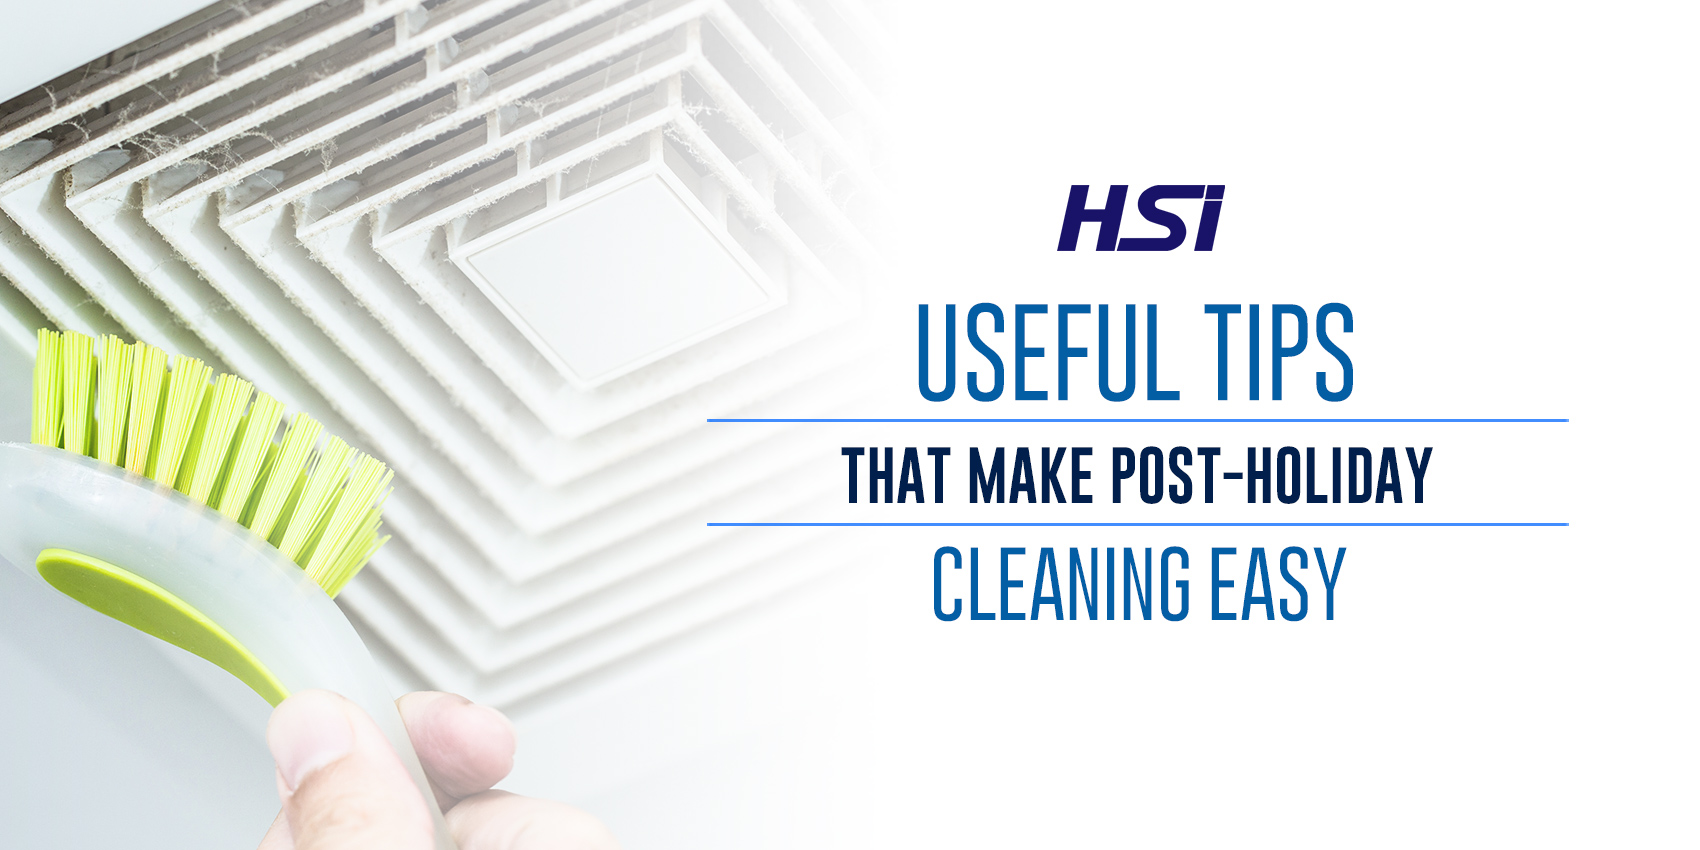 Useful Tips That Make Post-Holiday Cleaning Easy